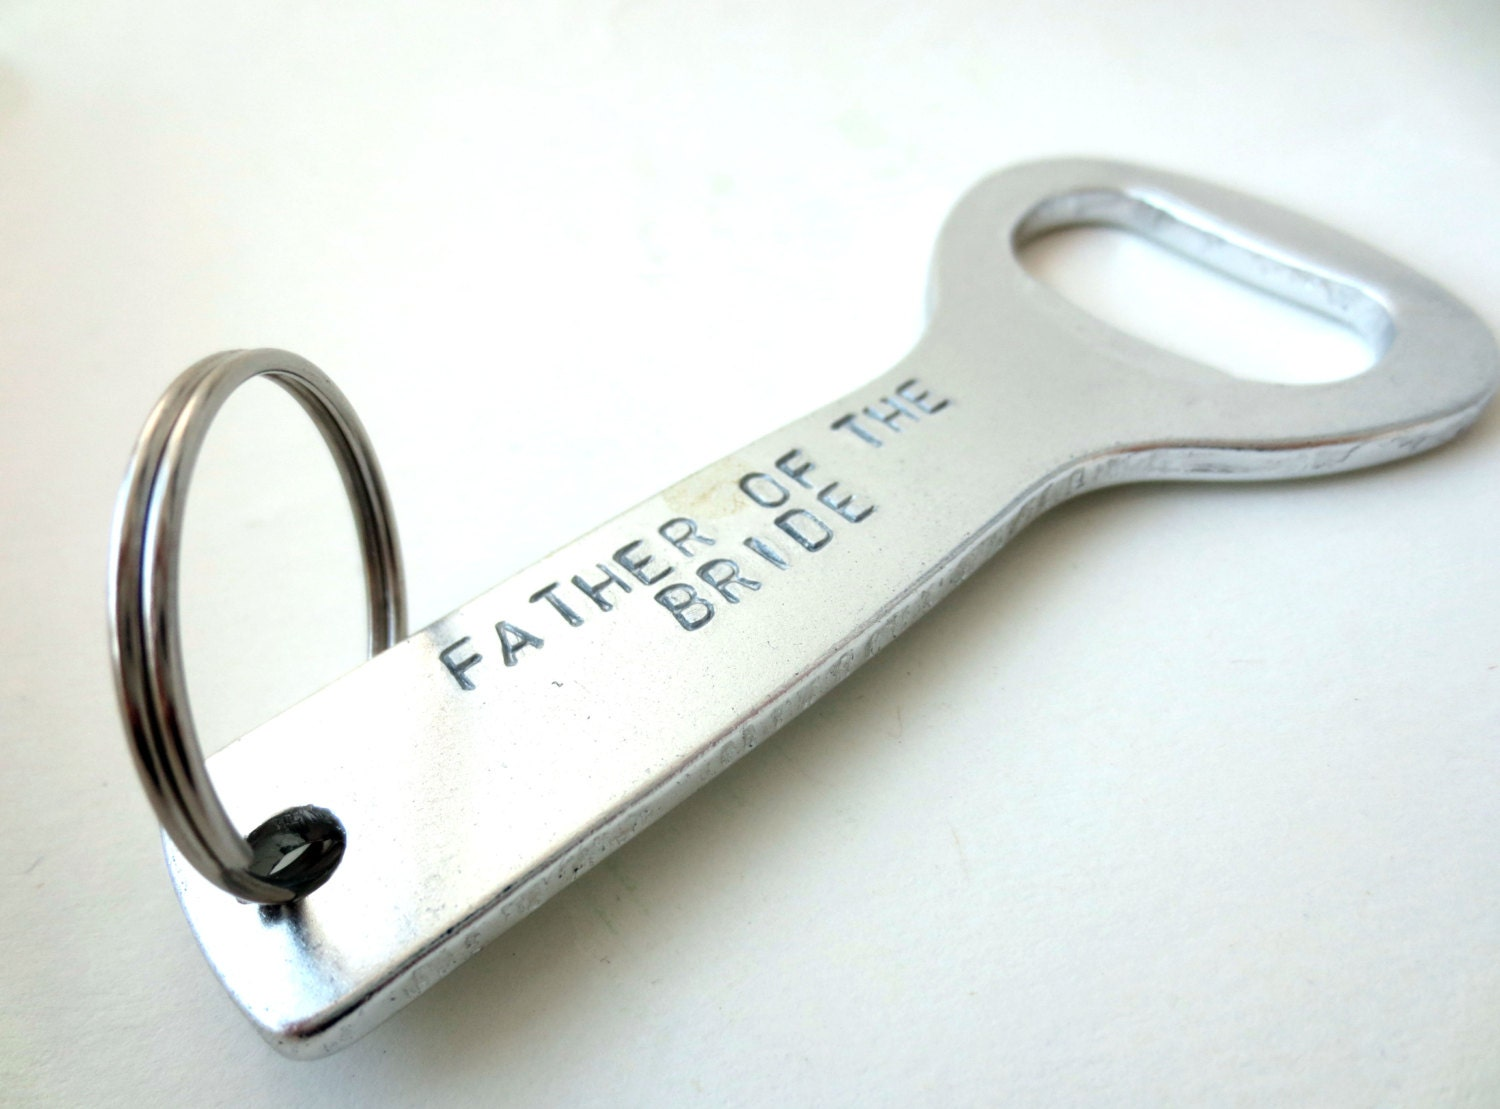 personalized bottle opener keychain groomsmen groom father of. Black Bedroom Furniture Sets. Home Design Ideas